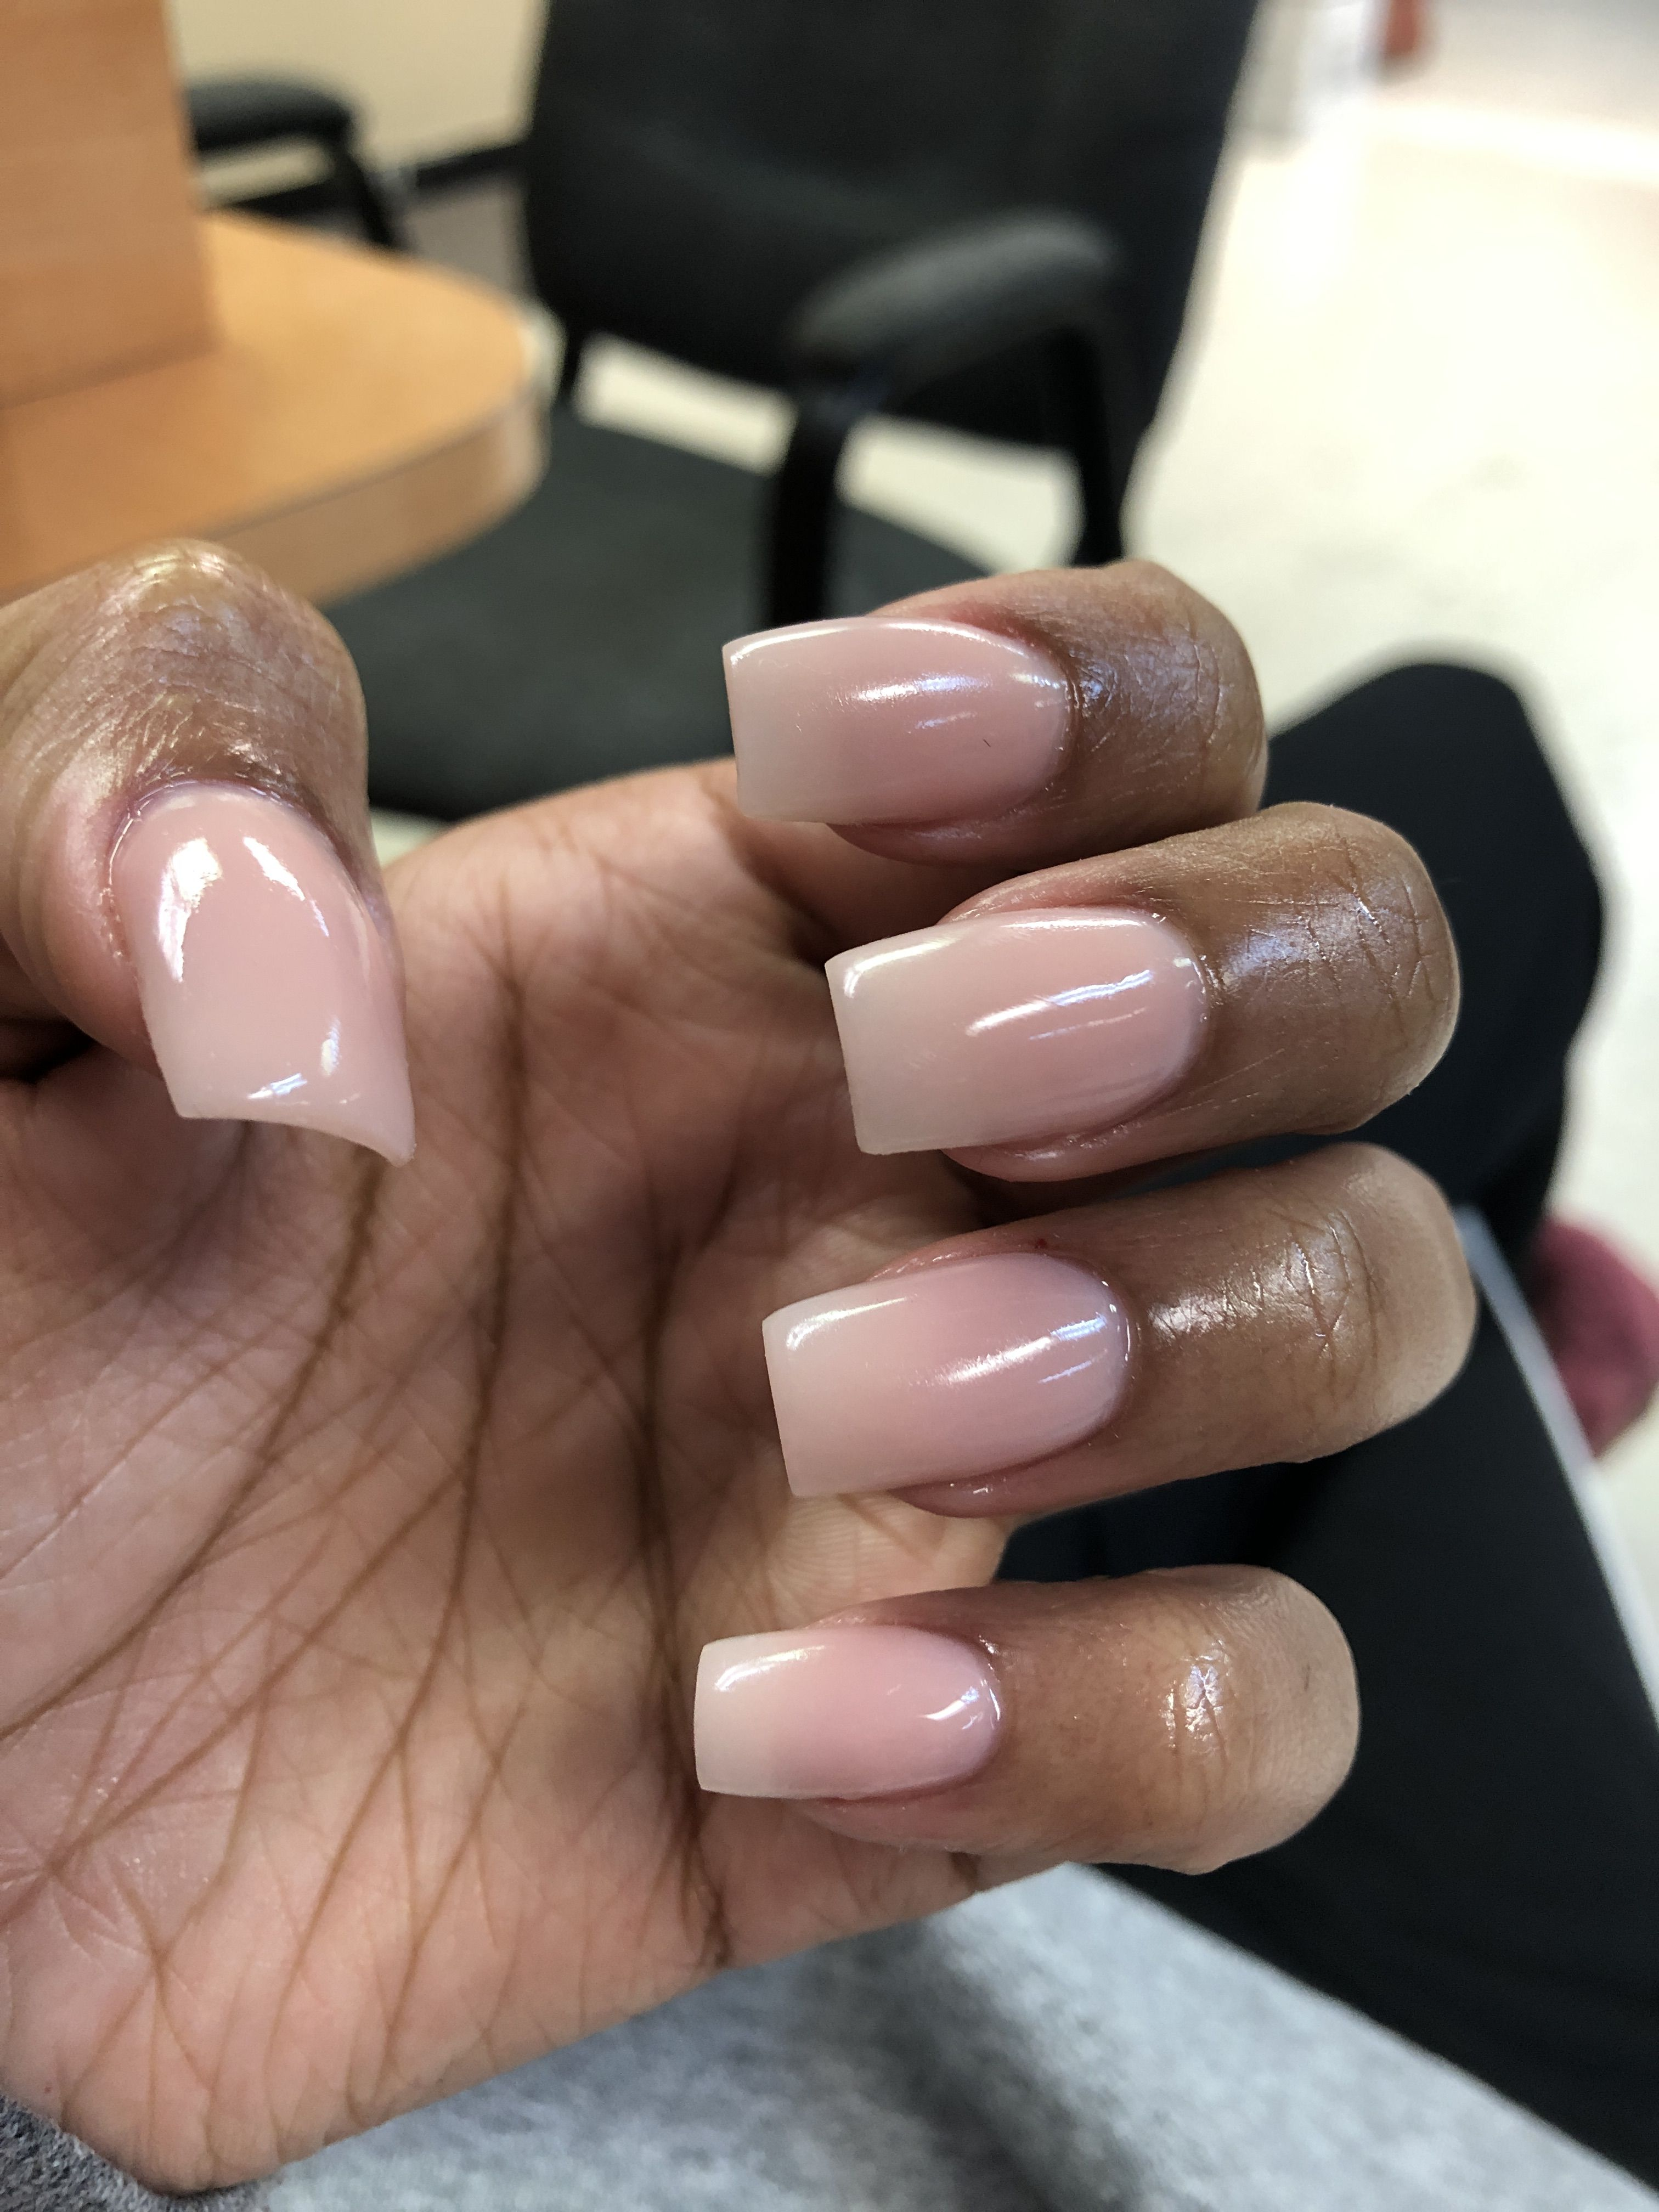 Follow Frontpaige For Moreeeeeee Short Square Acrylic Nails Square Acrylic Nails Pretty Acrylic Nails